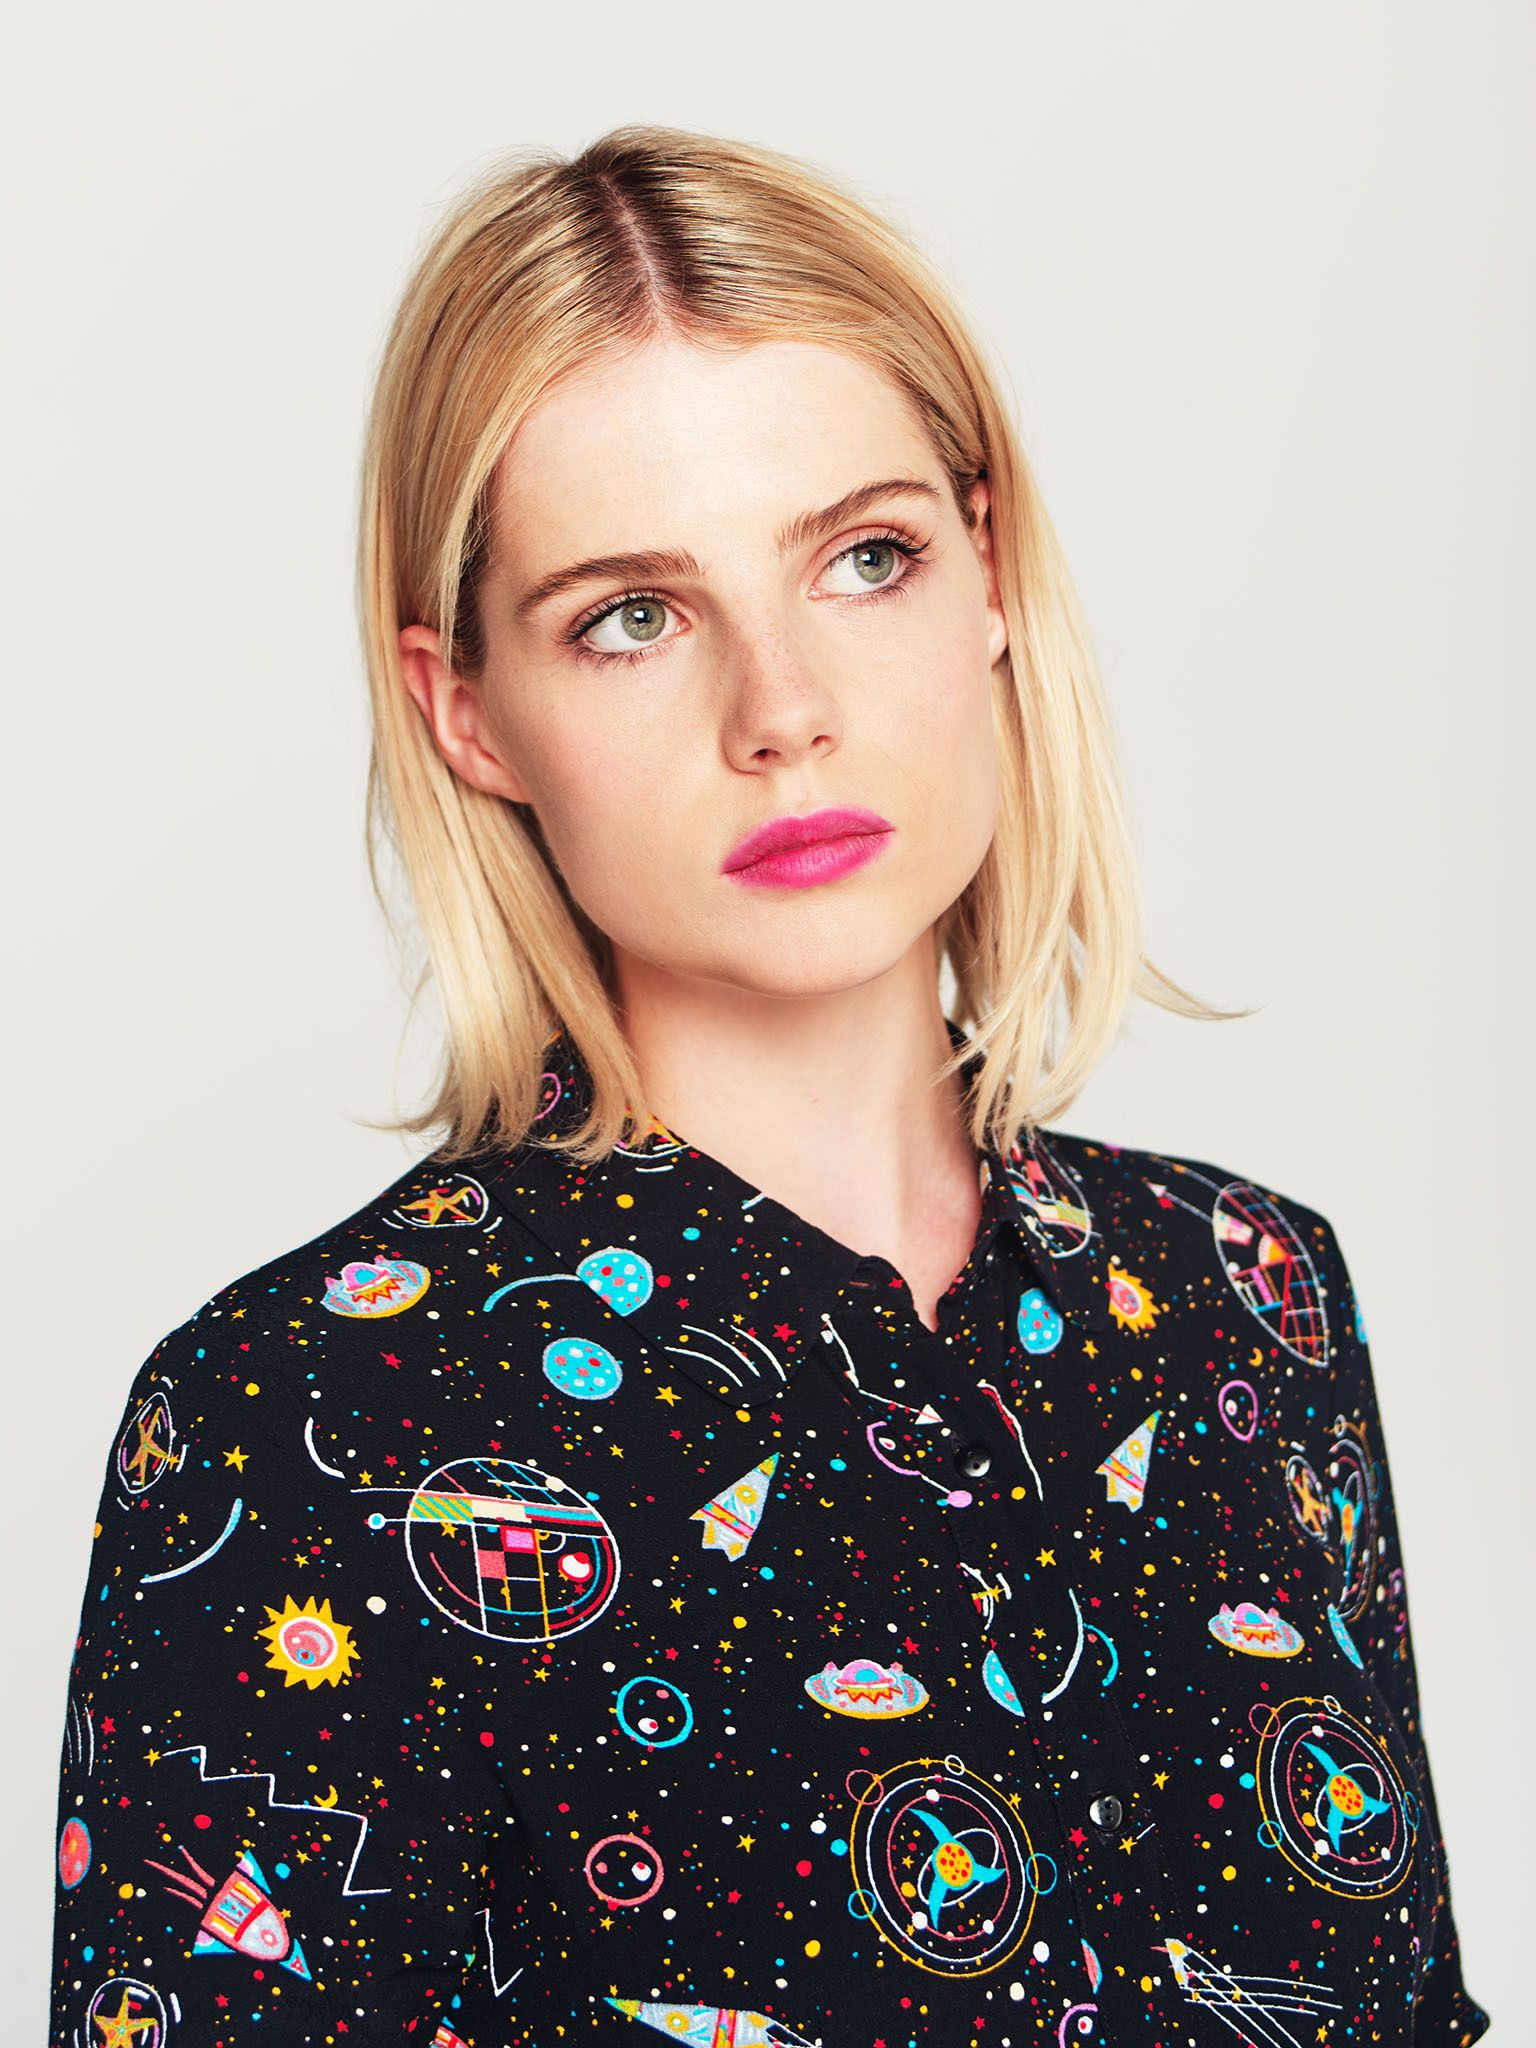 Lucy Boynton (born 1994 (born in the United States nude photos 2019